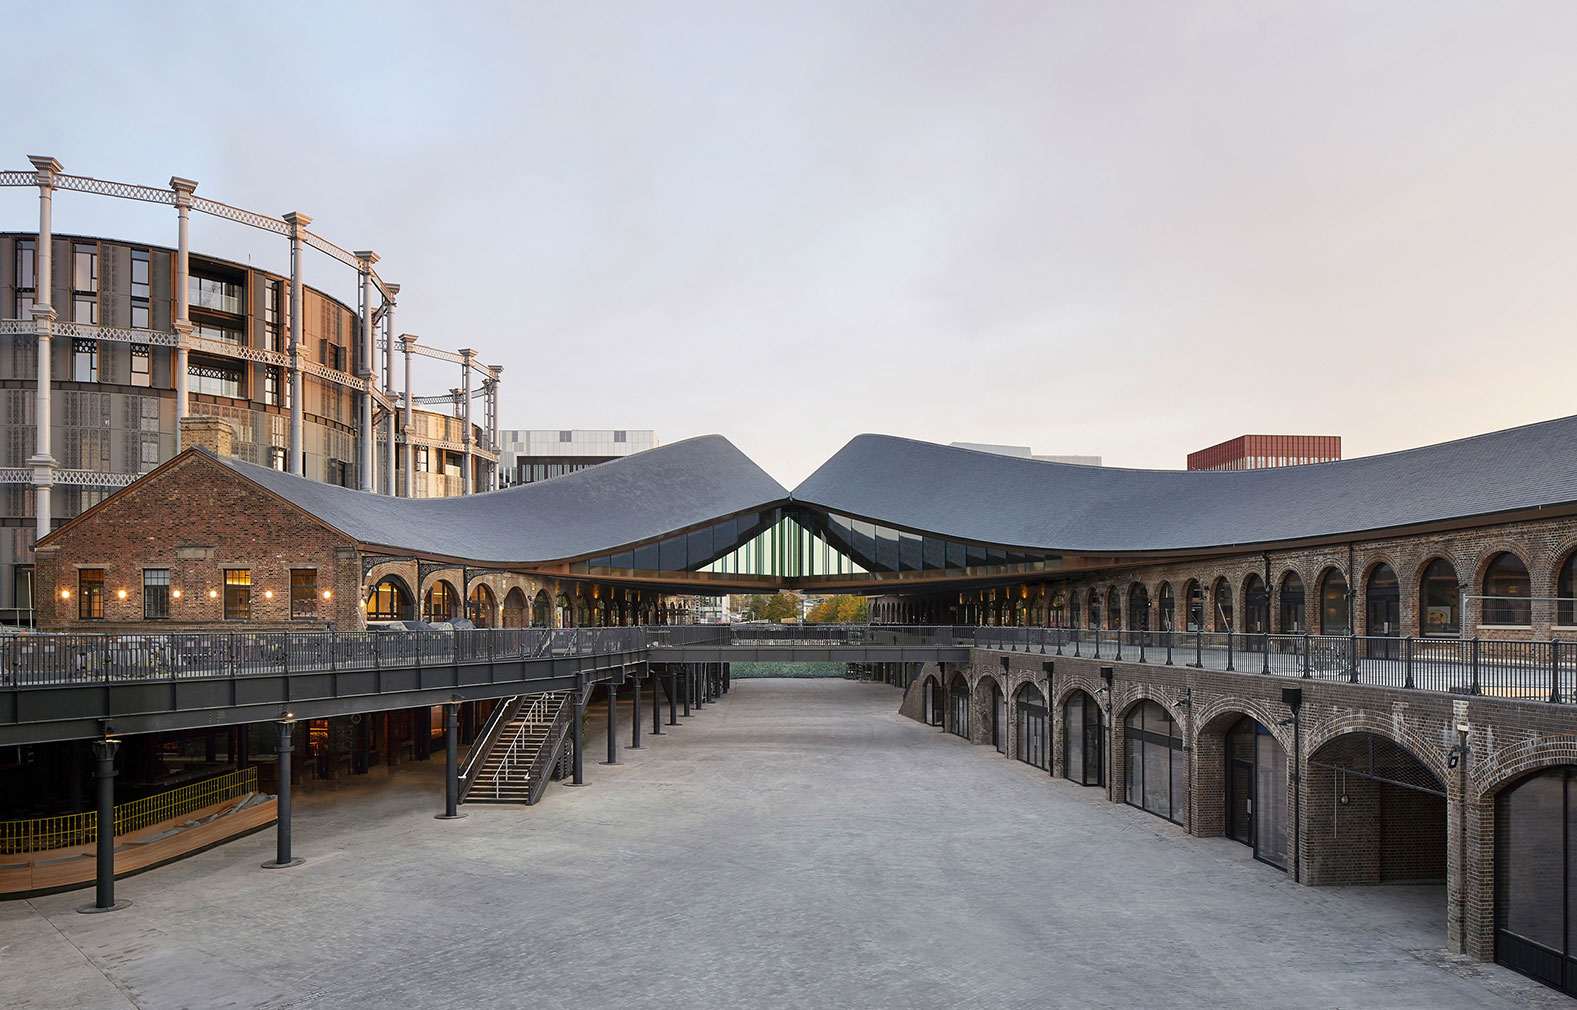 Adaptive reuse projects 2018: Coal Drops Yard, converted by Thomas Heatherwick